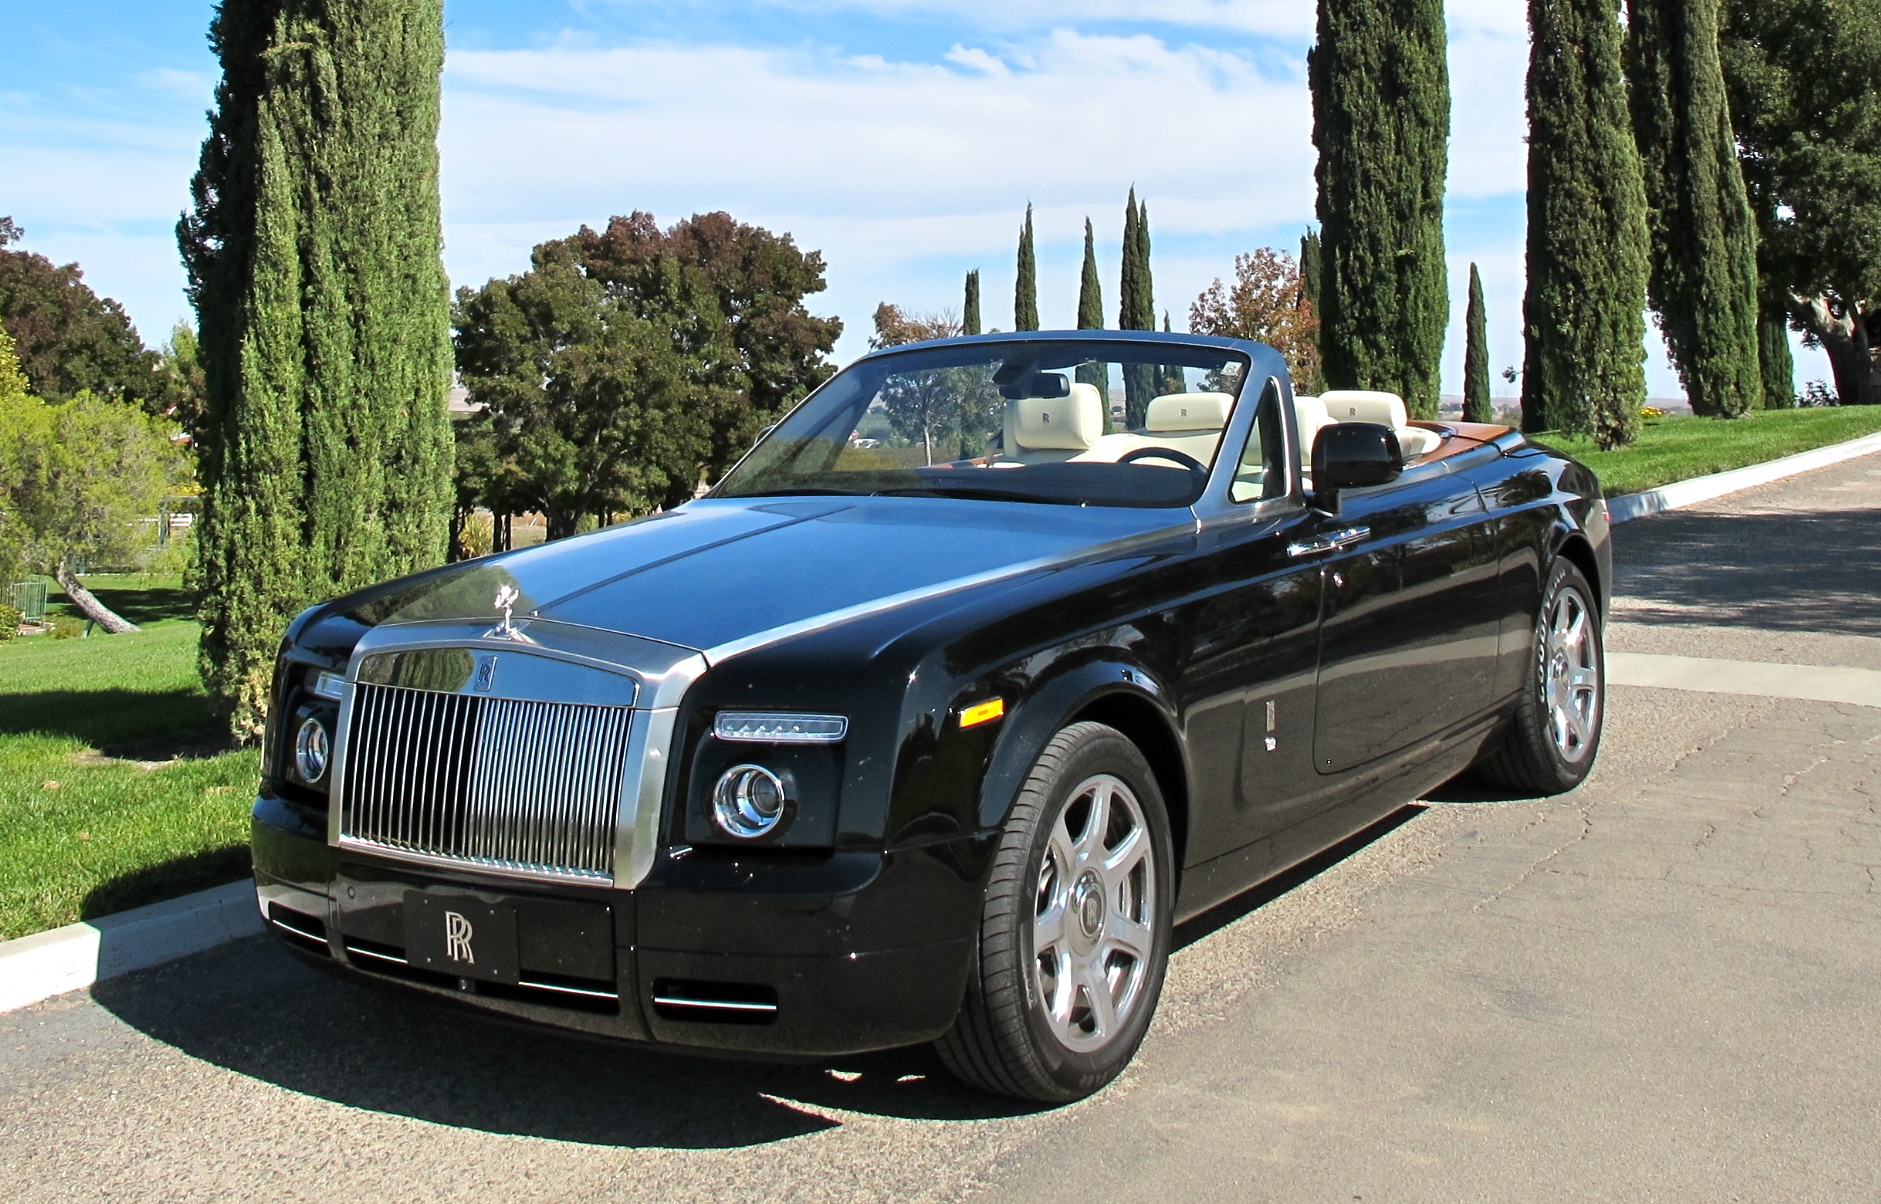 2011 Rolls royce Phantom Drophead Coupe #4